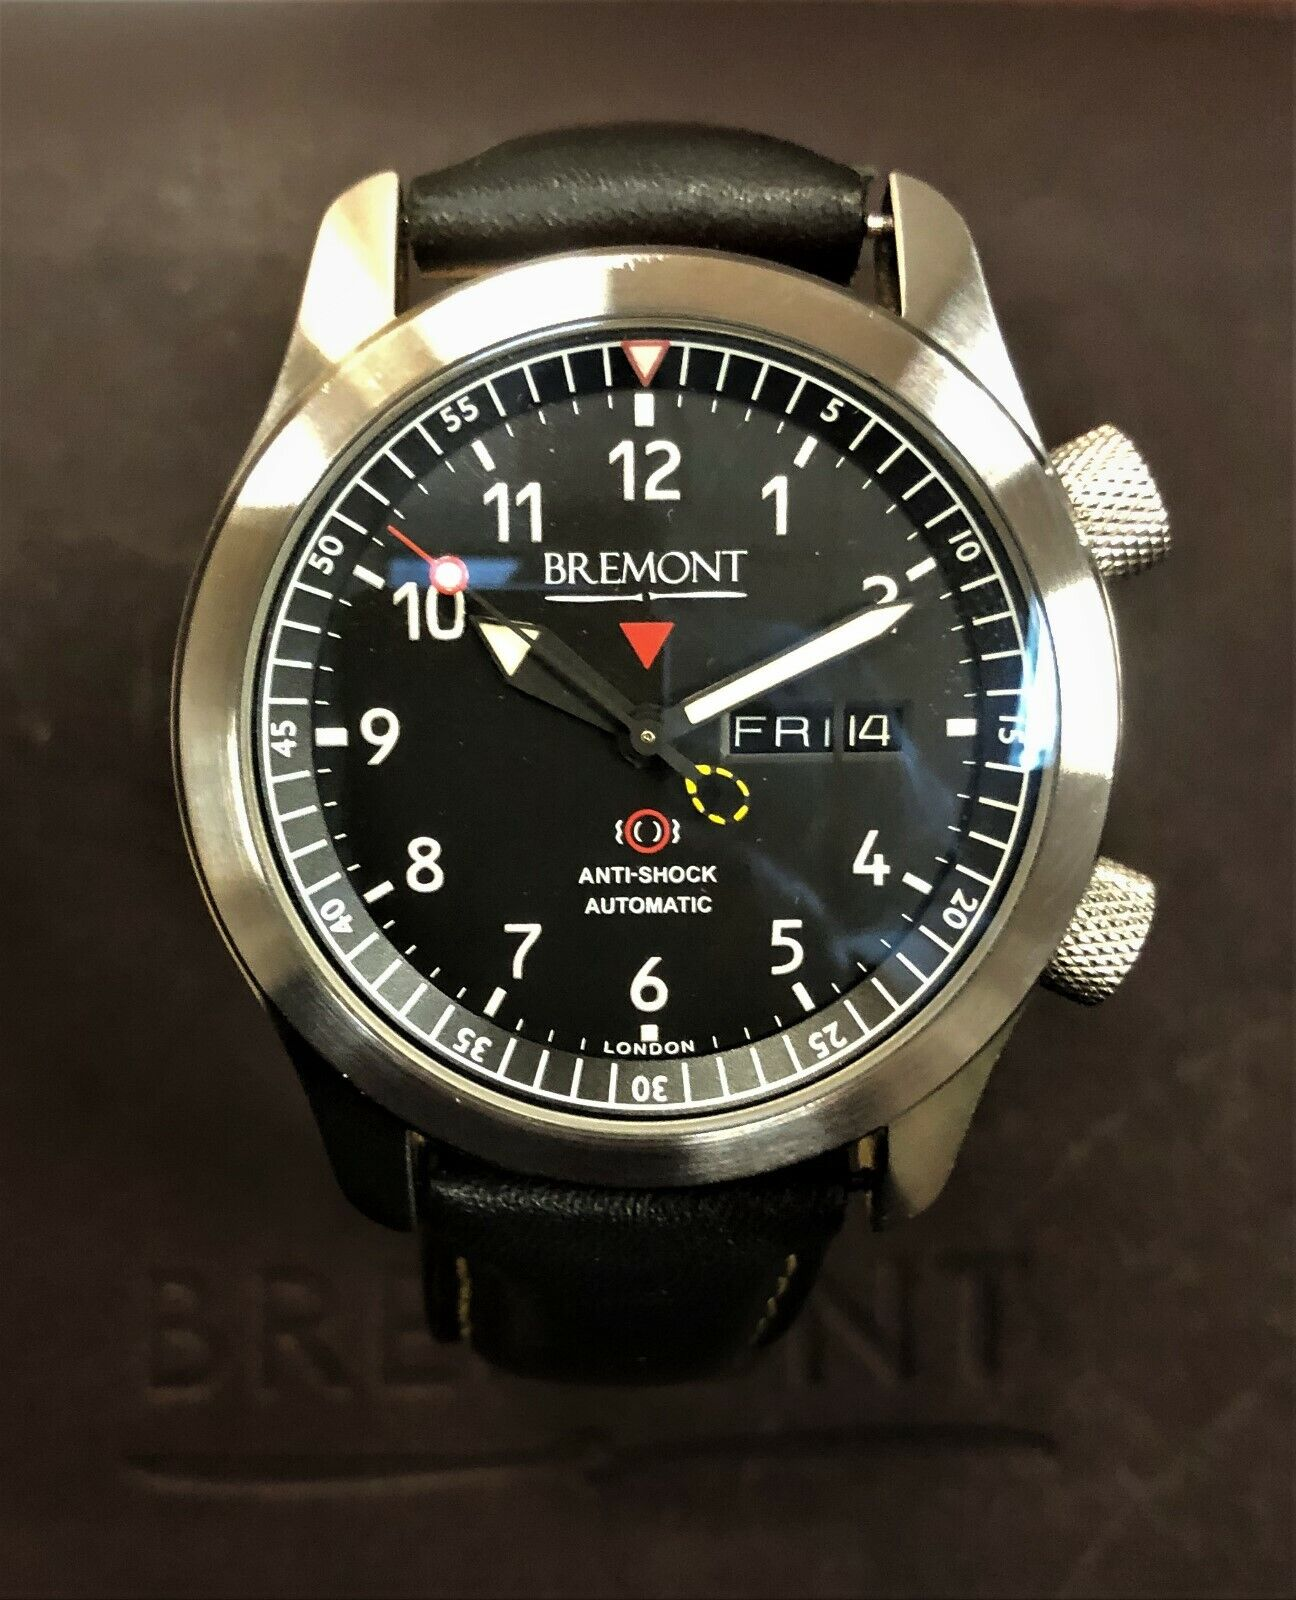 Bremont Martin Baker MBII-BK/OR - watch picture 1